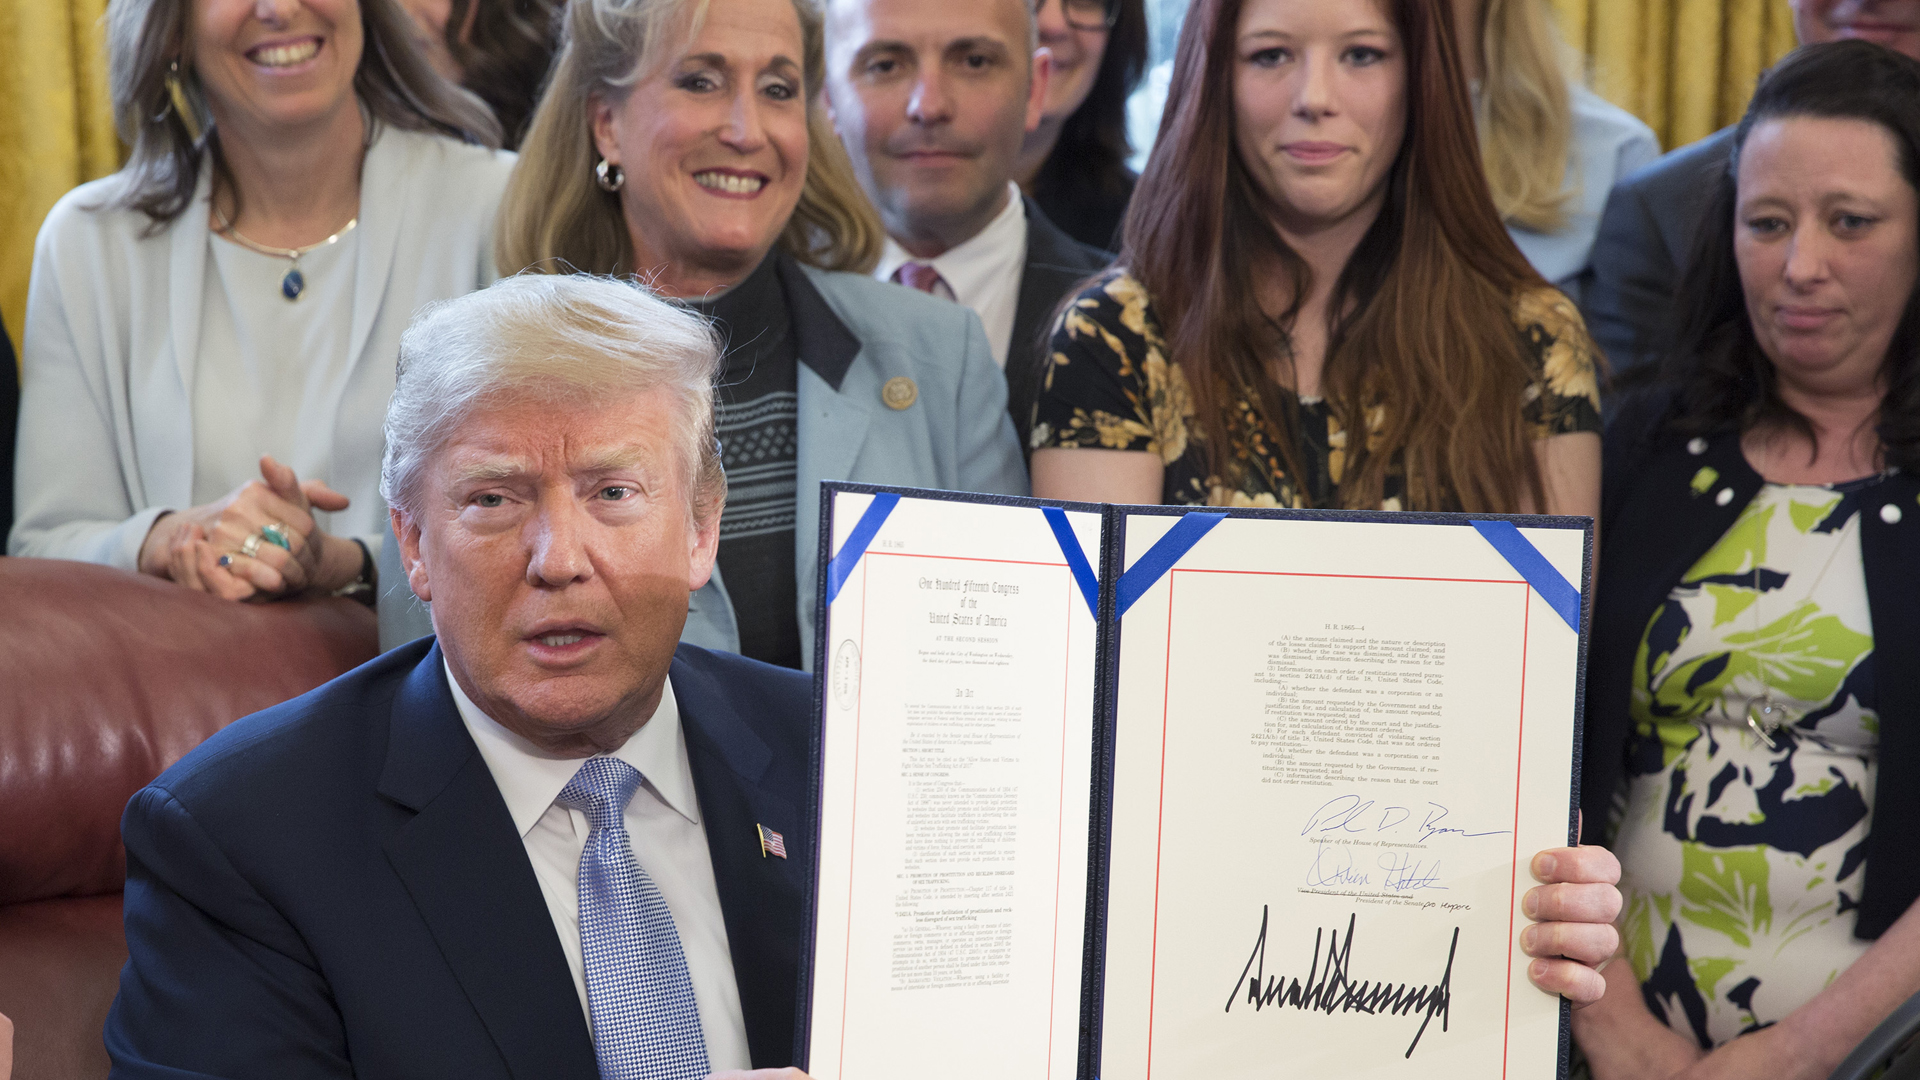 """Donald Trump displays H.R. 1865, the """"Allow States and Victims to Fight Online Sex Trafficking Act of 2017"""" after signing it into law at the White House on April 11, 2018. (Credit: Chris Kleponis-Pool/Getty Images)"""